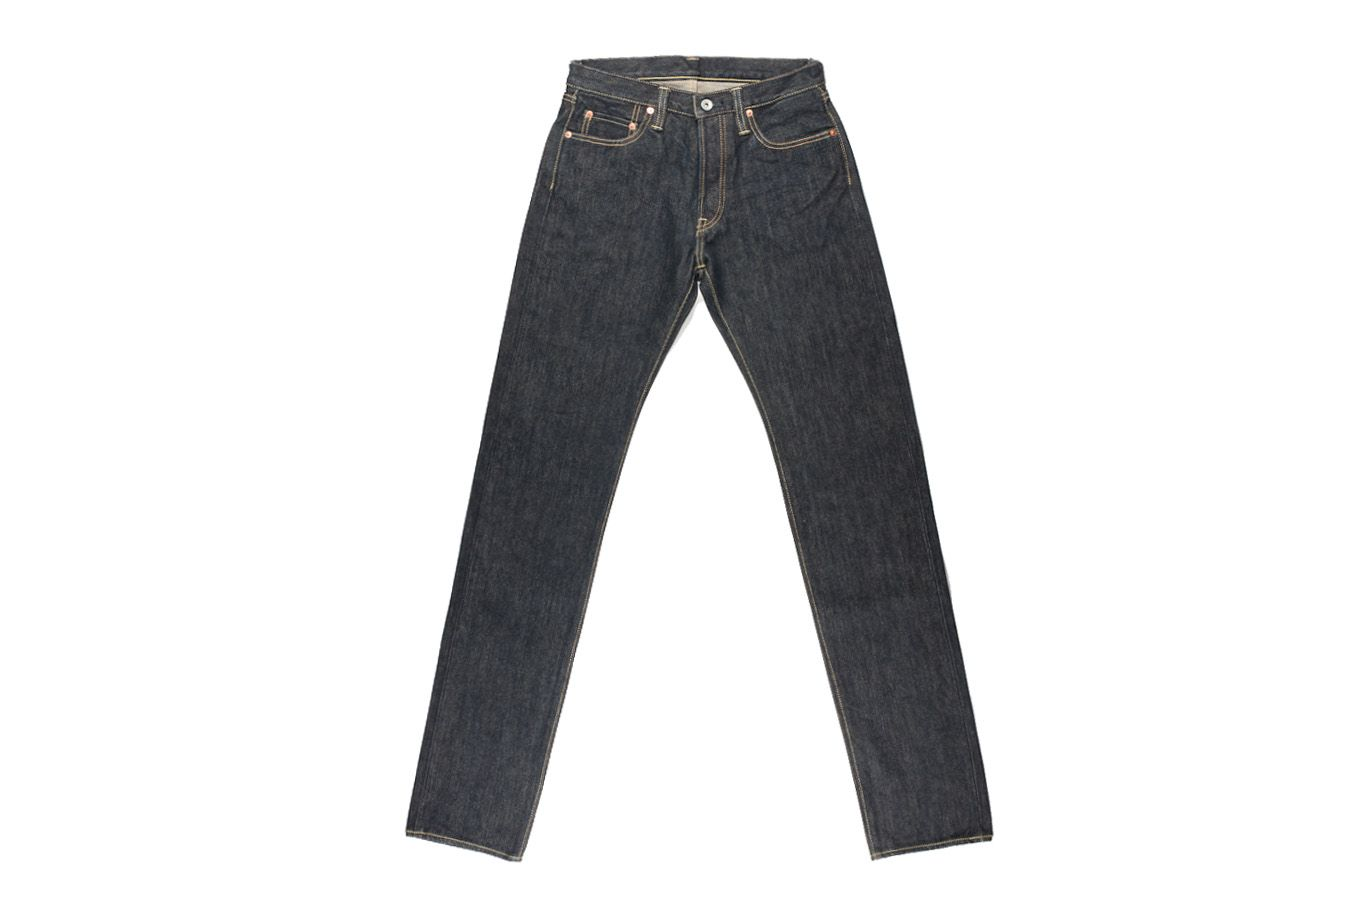 Iron heart 633s 21oz selvedge jean straight tapered